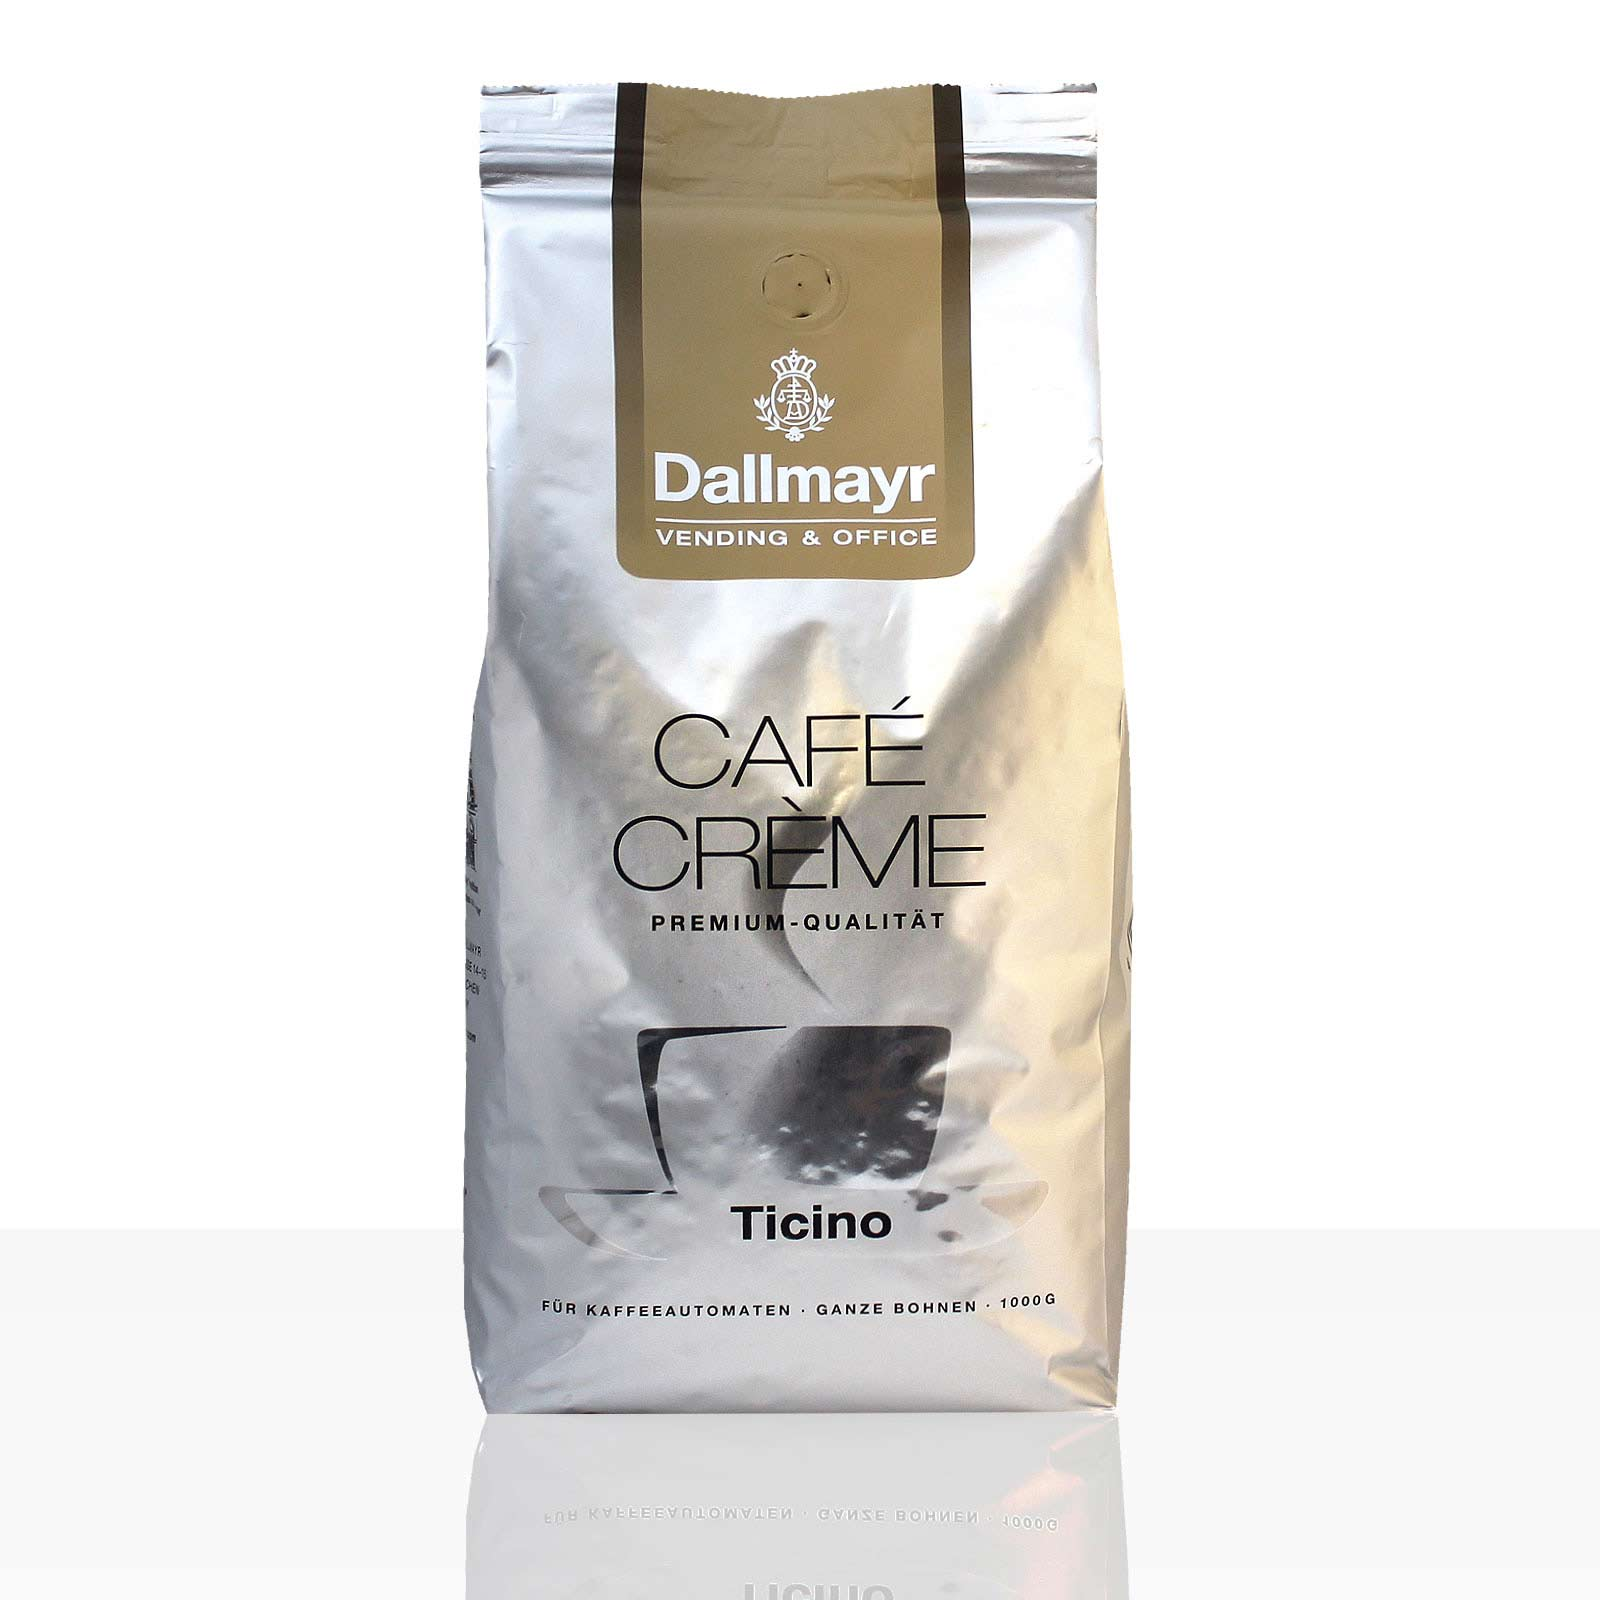 Dallmayr Cafe Creme Ticino - 1kg Kaffee ganze Bohne Vending & Office